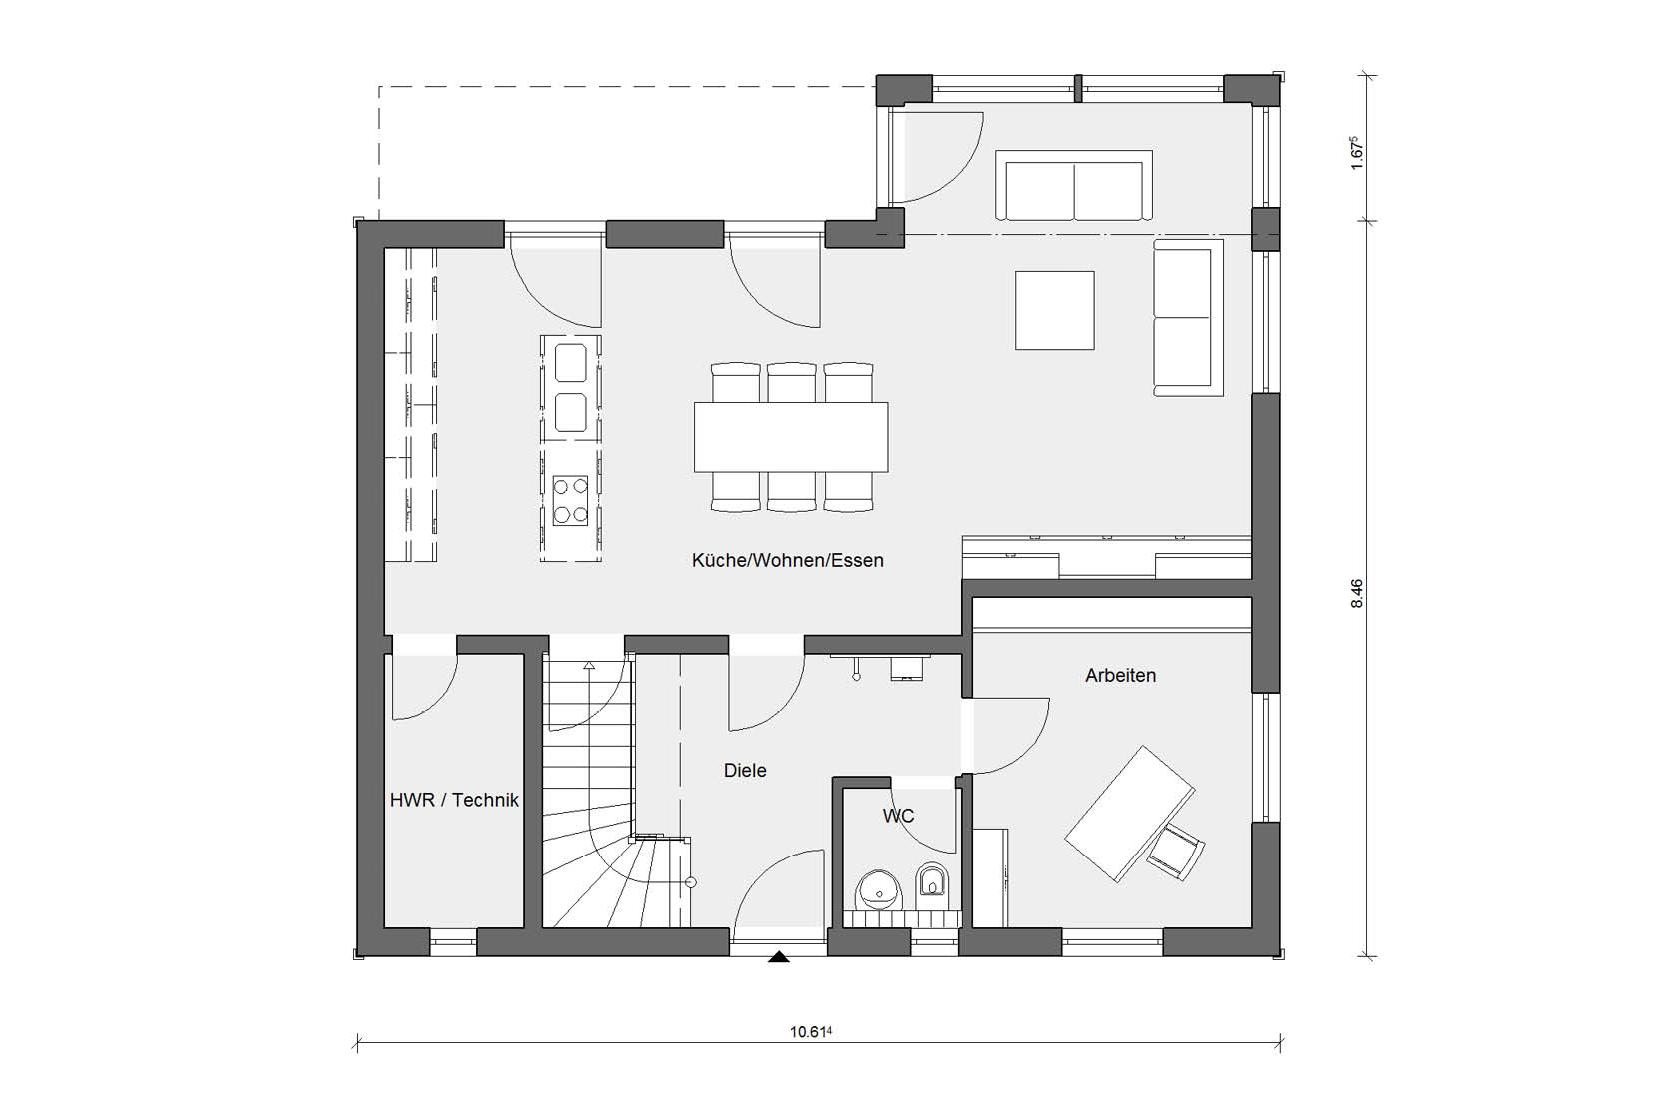 Ground floor floor plan prefabricated house with wooden facade E 20-159.1